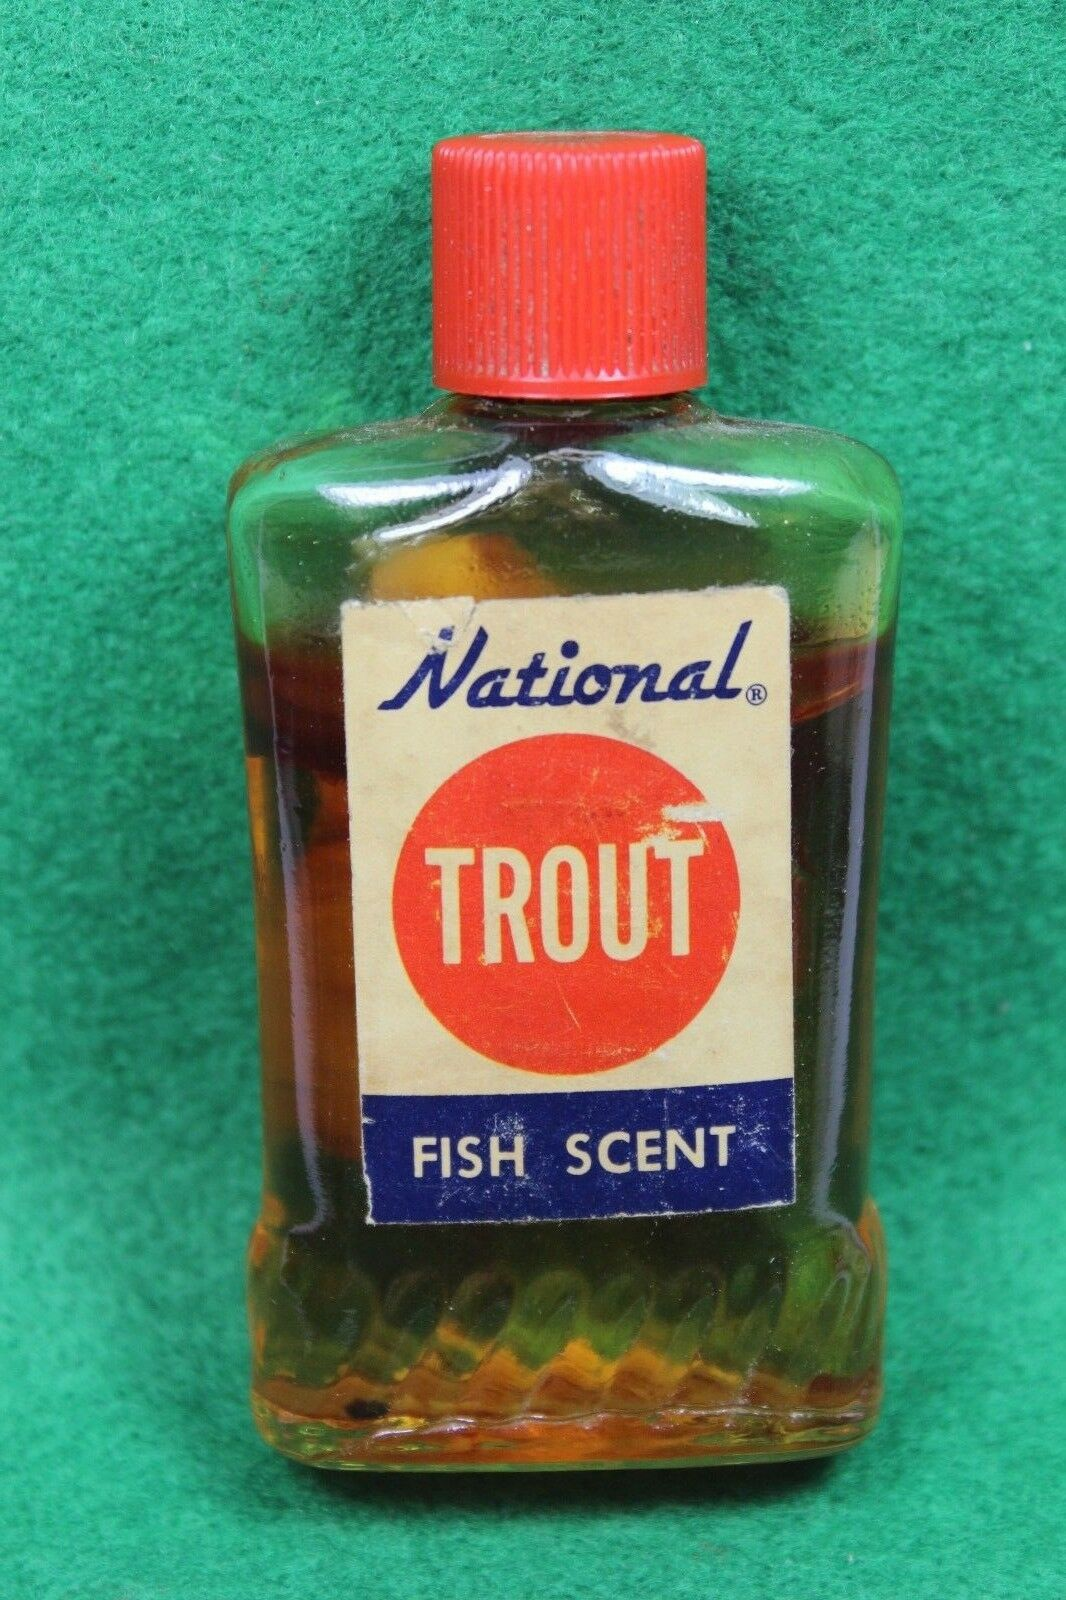 Vintage 1960's  National TROUT Fish Scent Bottle 90% Full  - Garden Grove, Calif.  promotional items